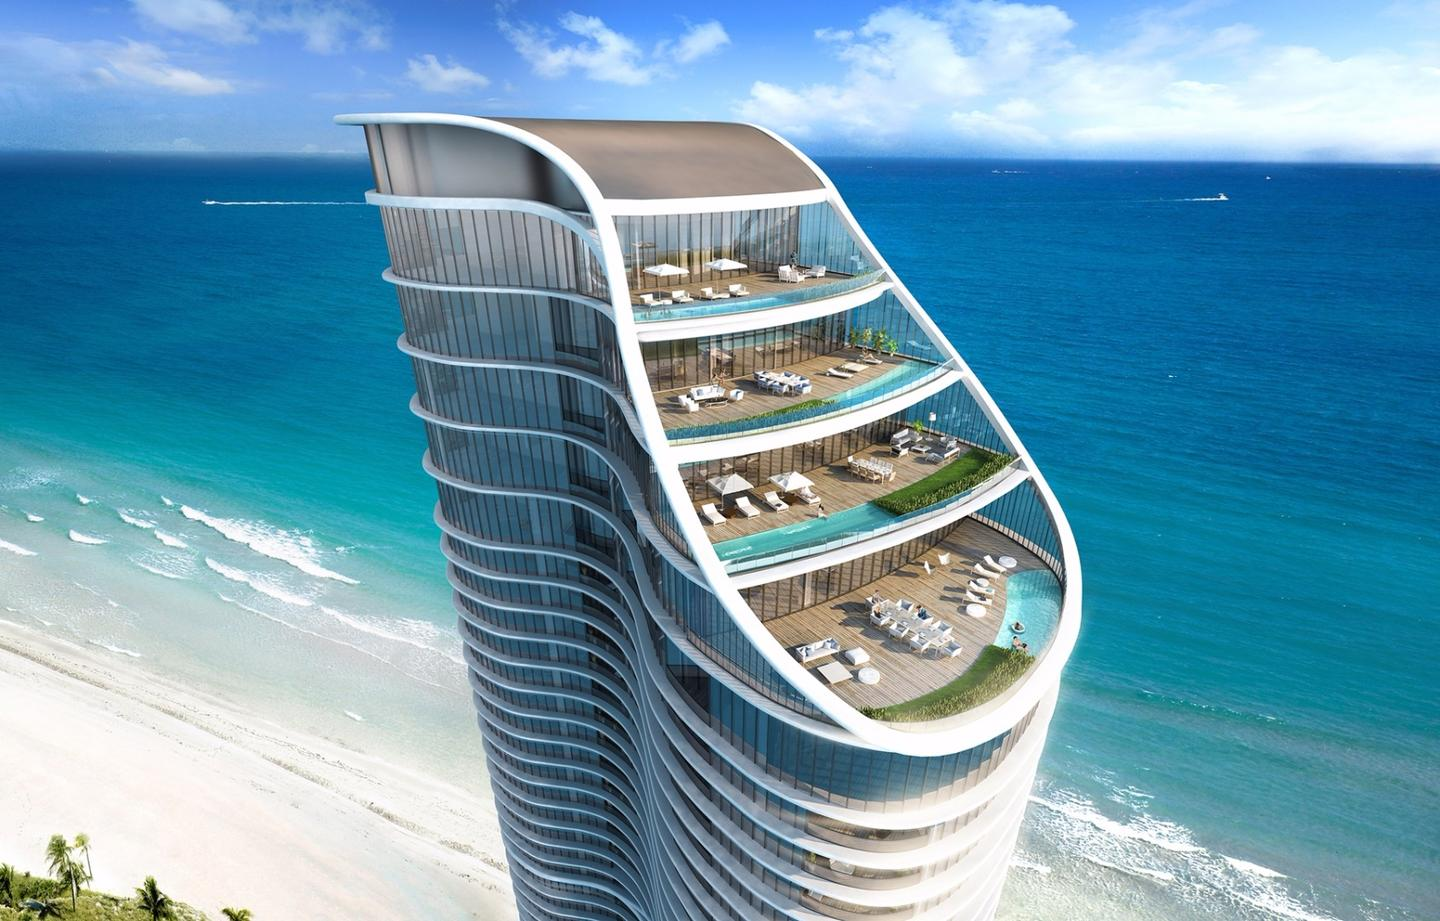 Penthouse residents at the Ritz-Carlton Residences in Sunny Isles Beach will be able to relax in their own pools